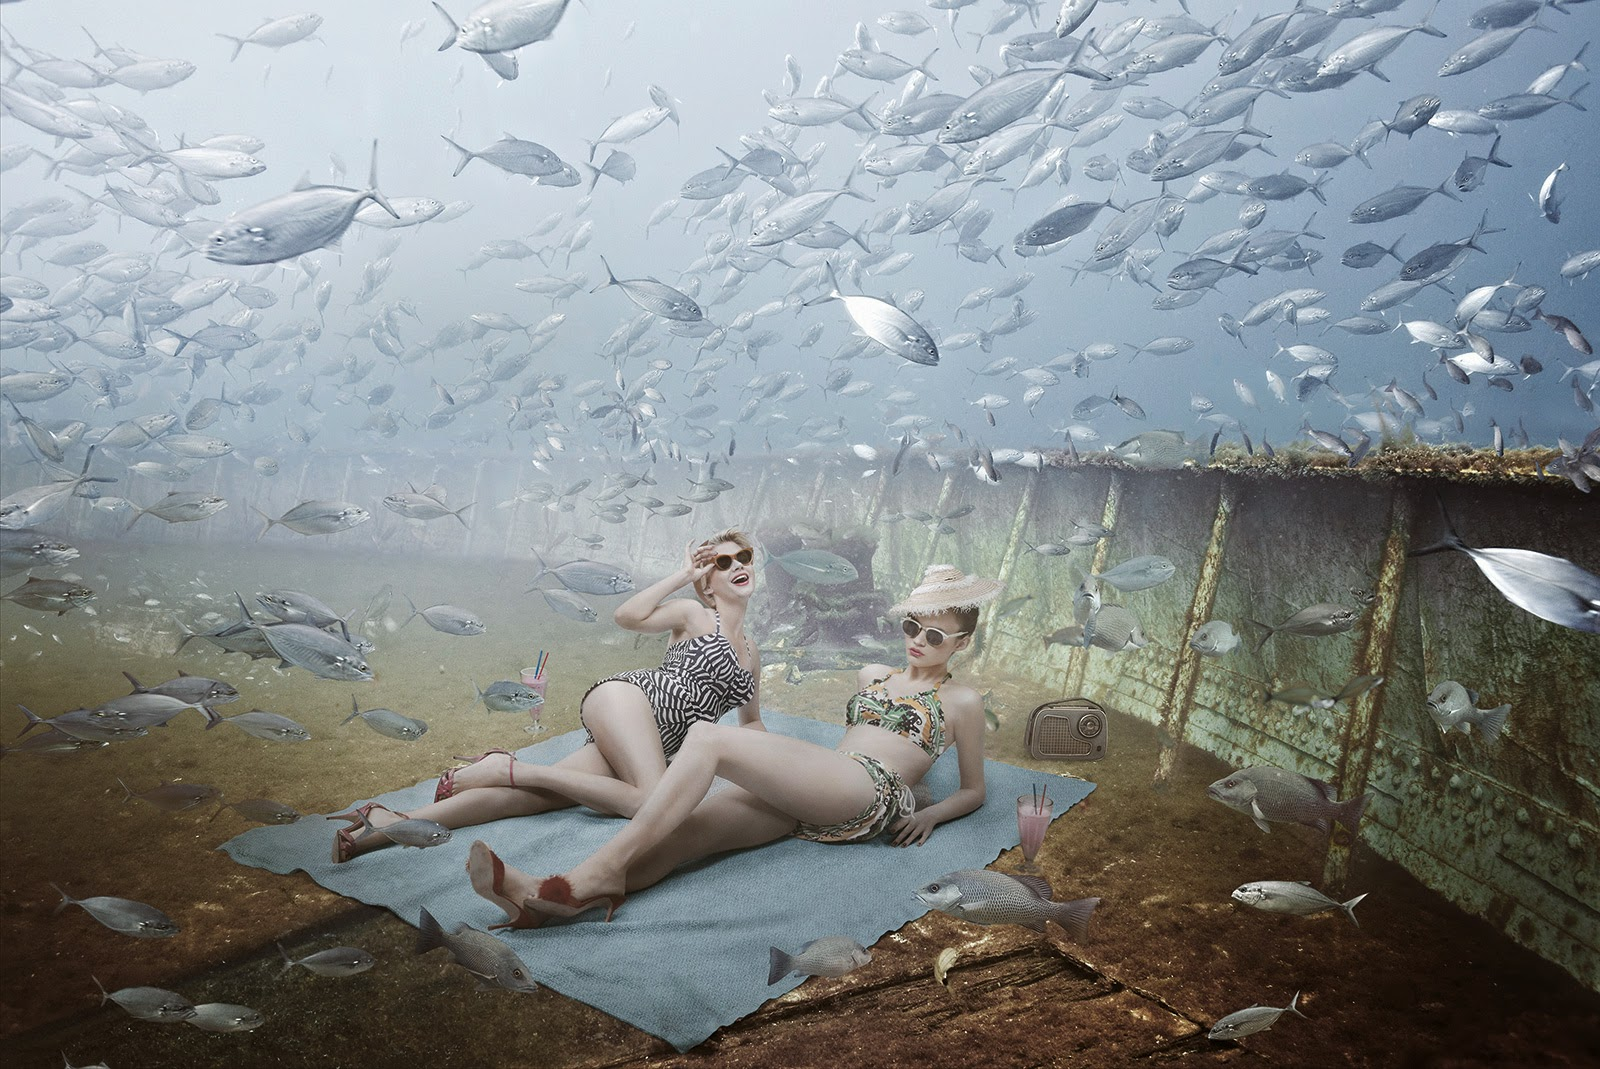 23-Andreas-Franke-Surreal-Artificial-Reef-Photography-www-designstack-co